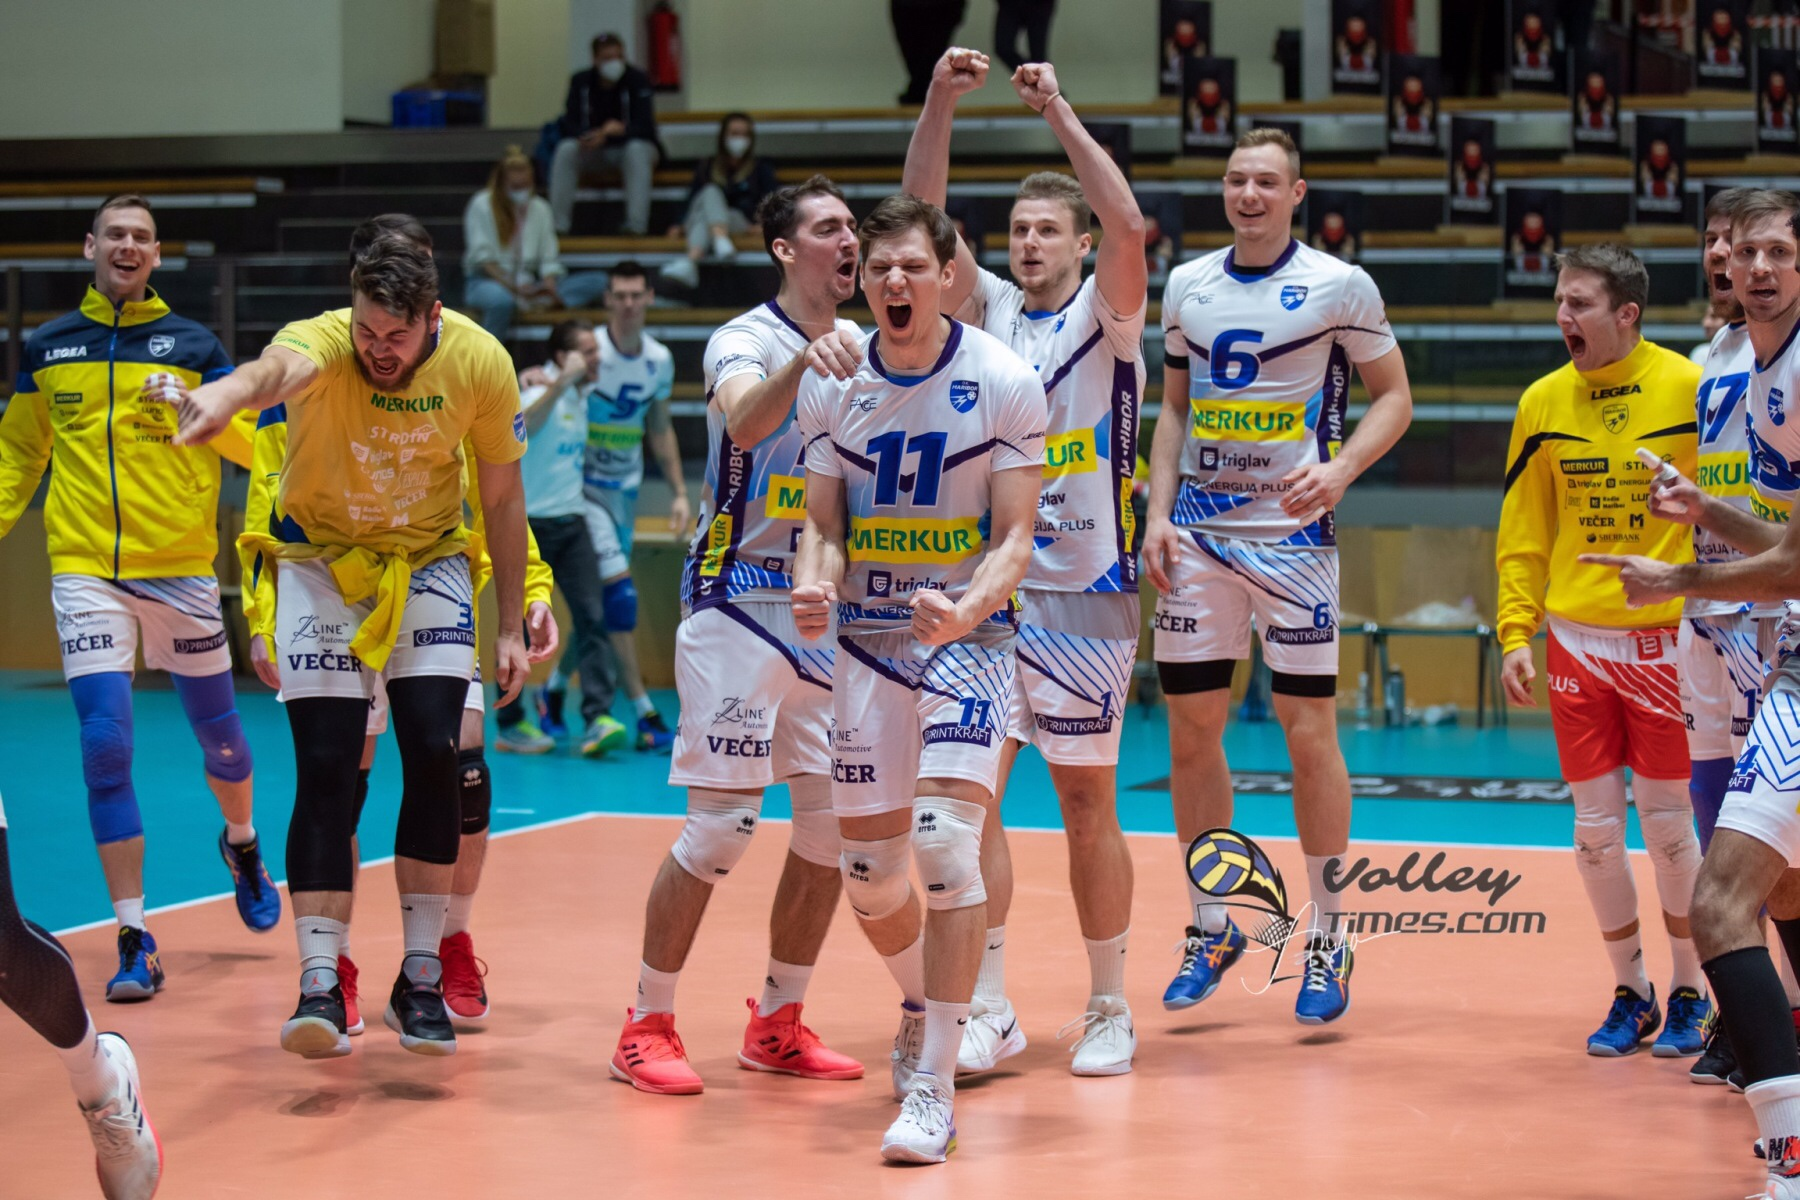 Mevza League: final is OK Merkur Maribor – ACH volley Ljubljana!